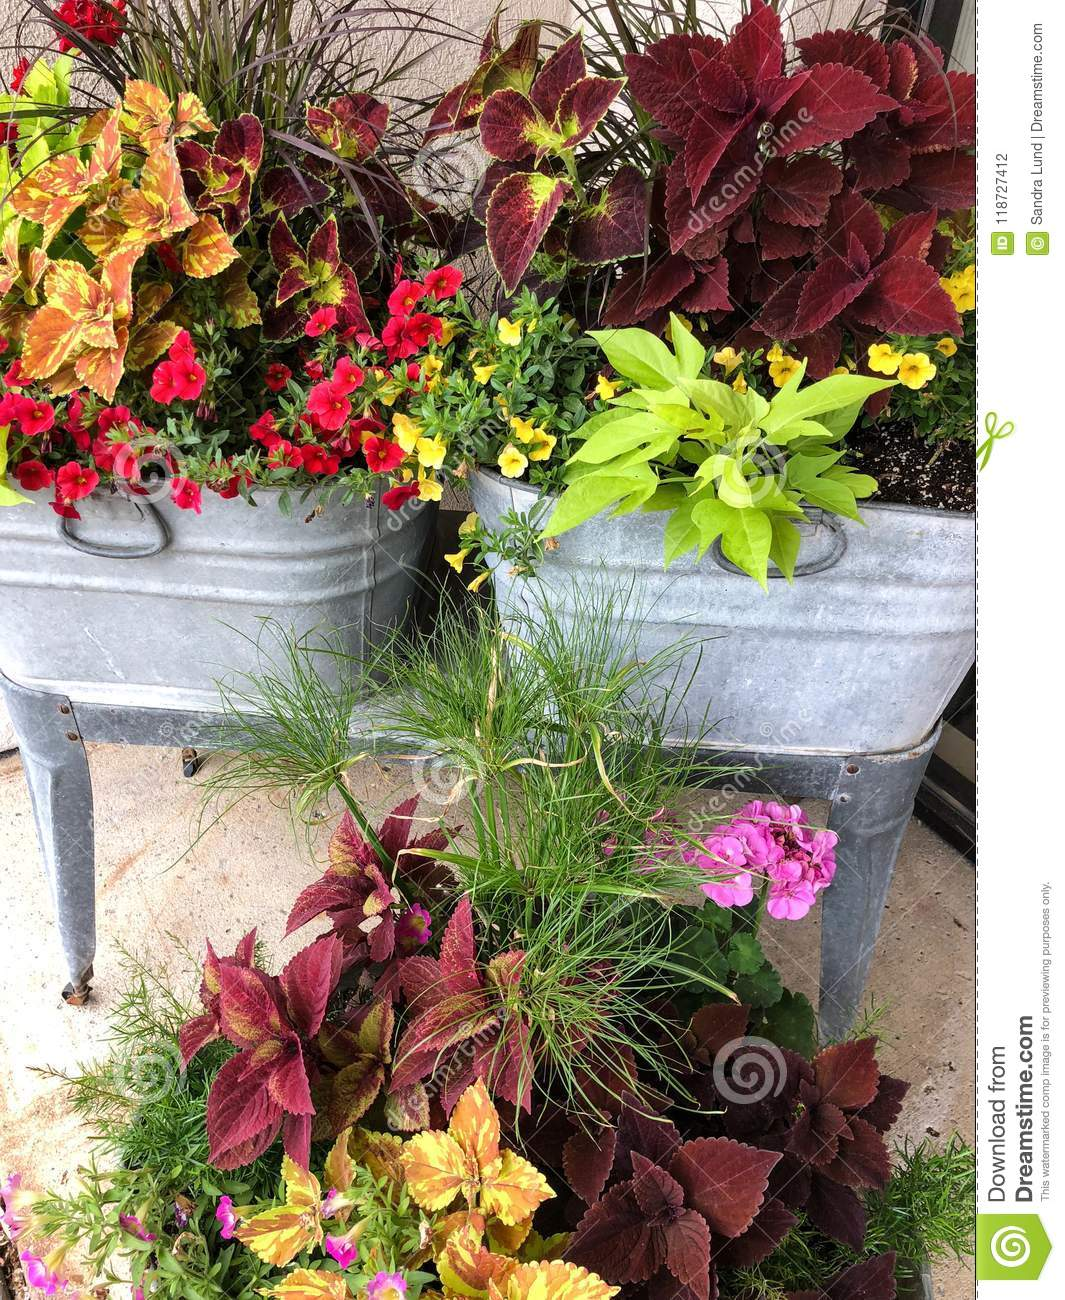 Colorful Flowers In Stainless Steel Tubs Stock Photo - Image of ...